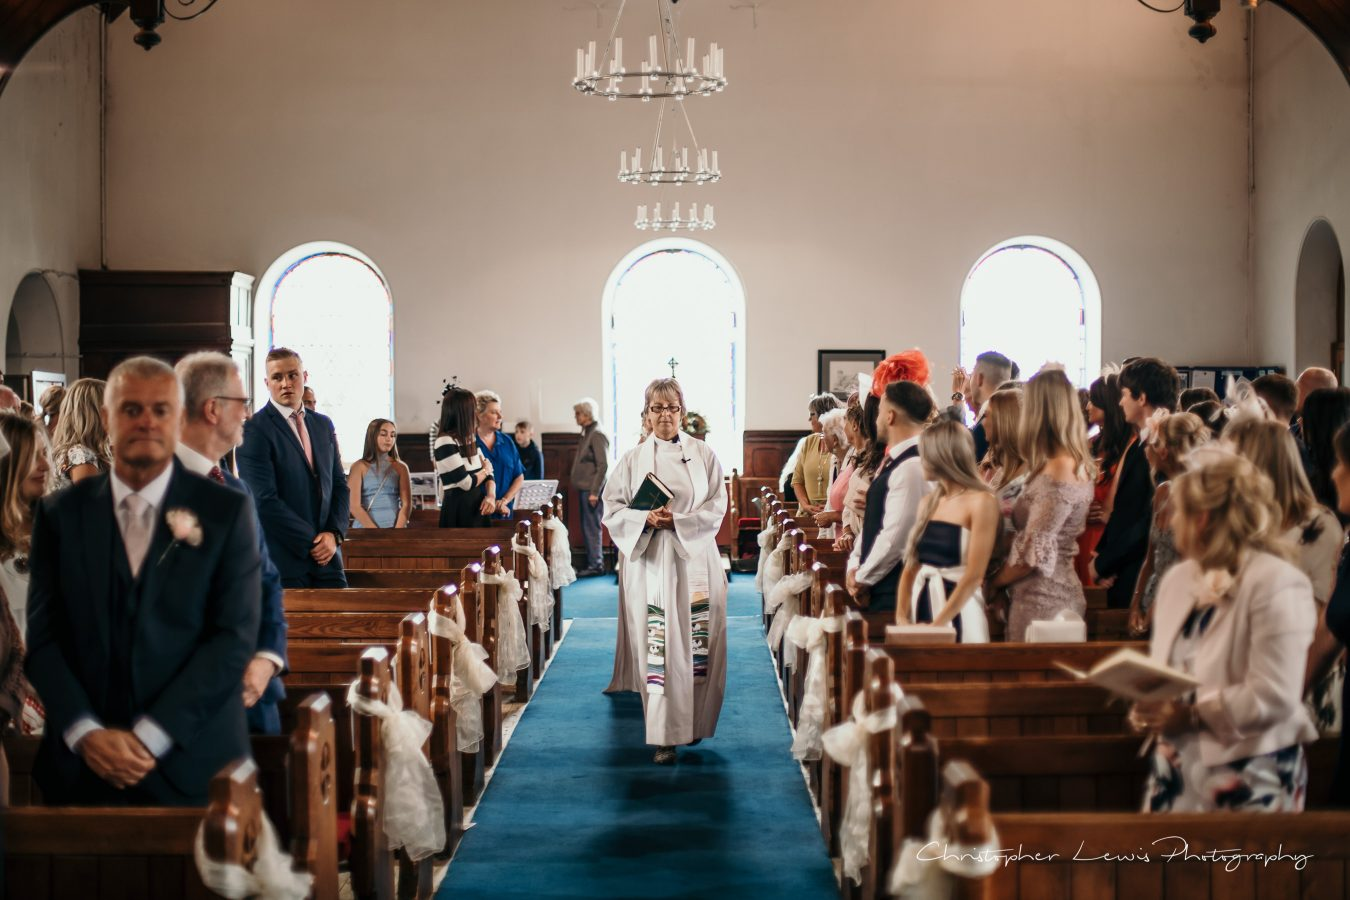 White-Hart-Lydgate-Wedding-Christopher-Lewis-Photography-61